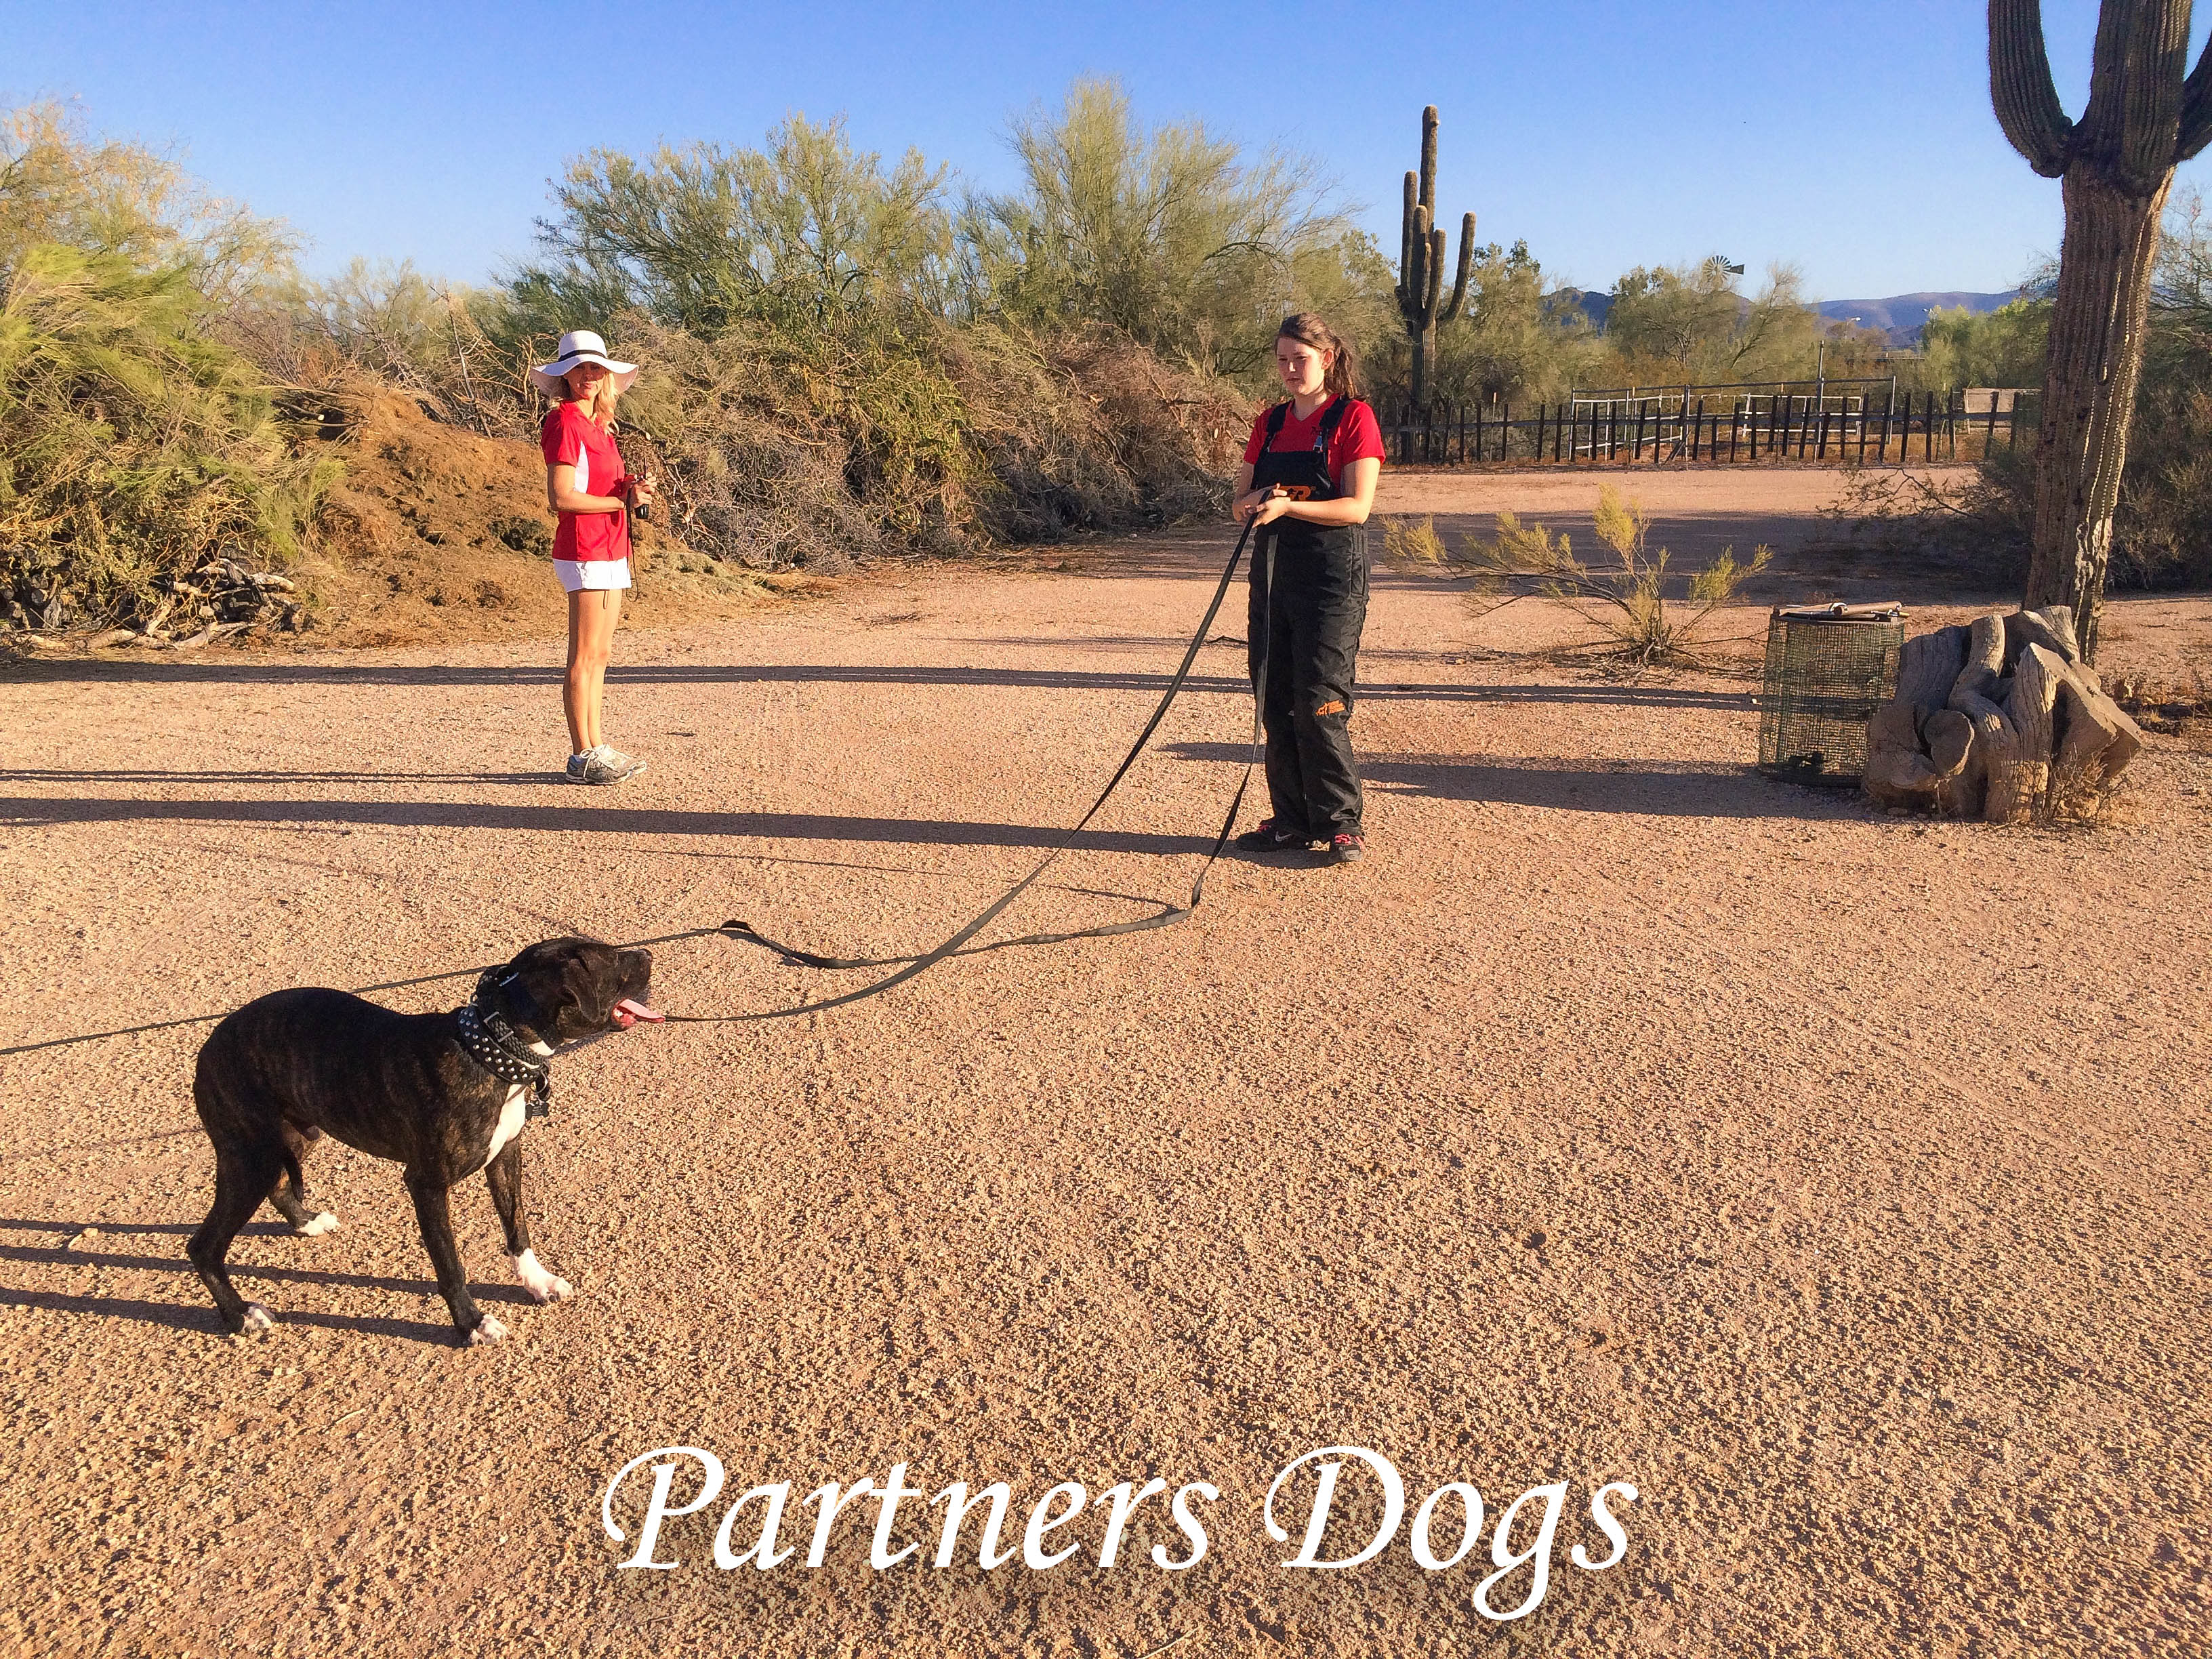 Partners Snake Avoidance, Rattlesnake Avoidance Training, Partners Dogs, Partners Dog Training, Snakeproofing, stopping dogs from attacking rattlesnakes, dog avoids rattlesnakes, how do i get my dog to stay away from rattlesnakes.